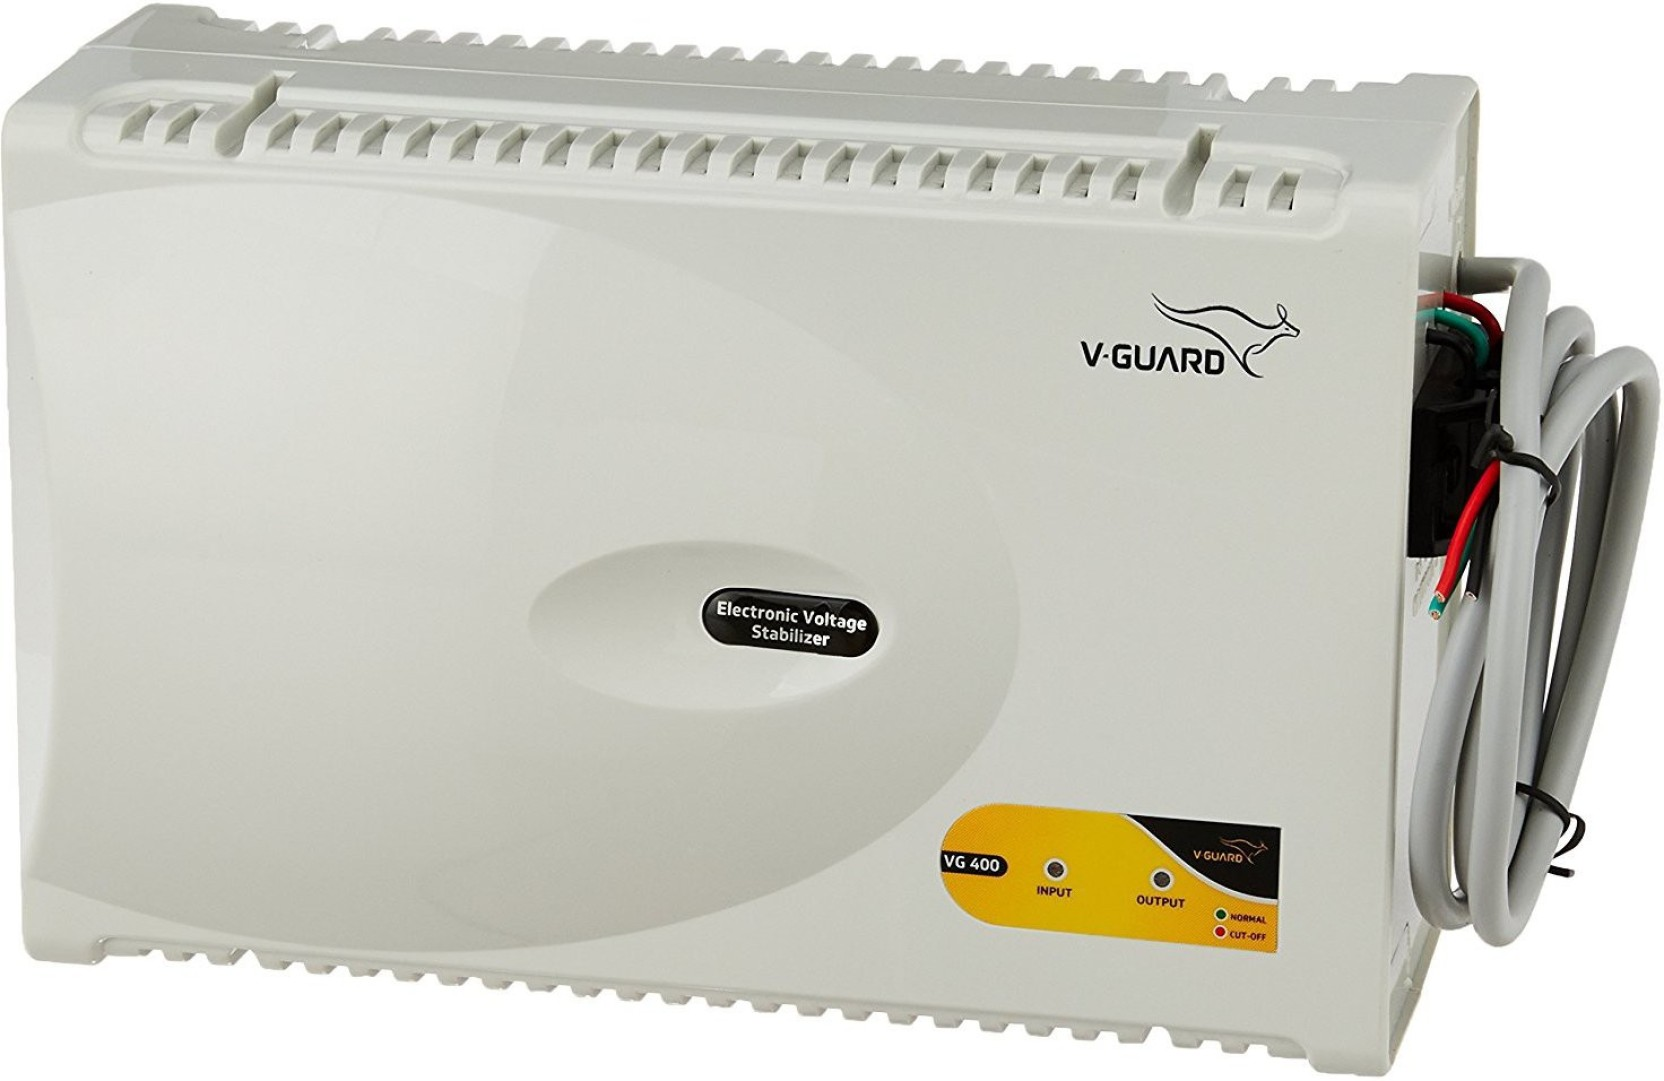 V Guard Vg 400 For 15 Ton Ac 170v To 270v Voltage Stabilizer Camera Wiring Diagram Furthermore Security On Add Cart